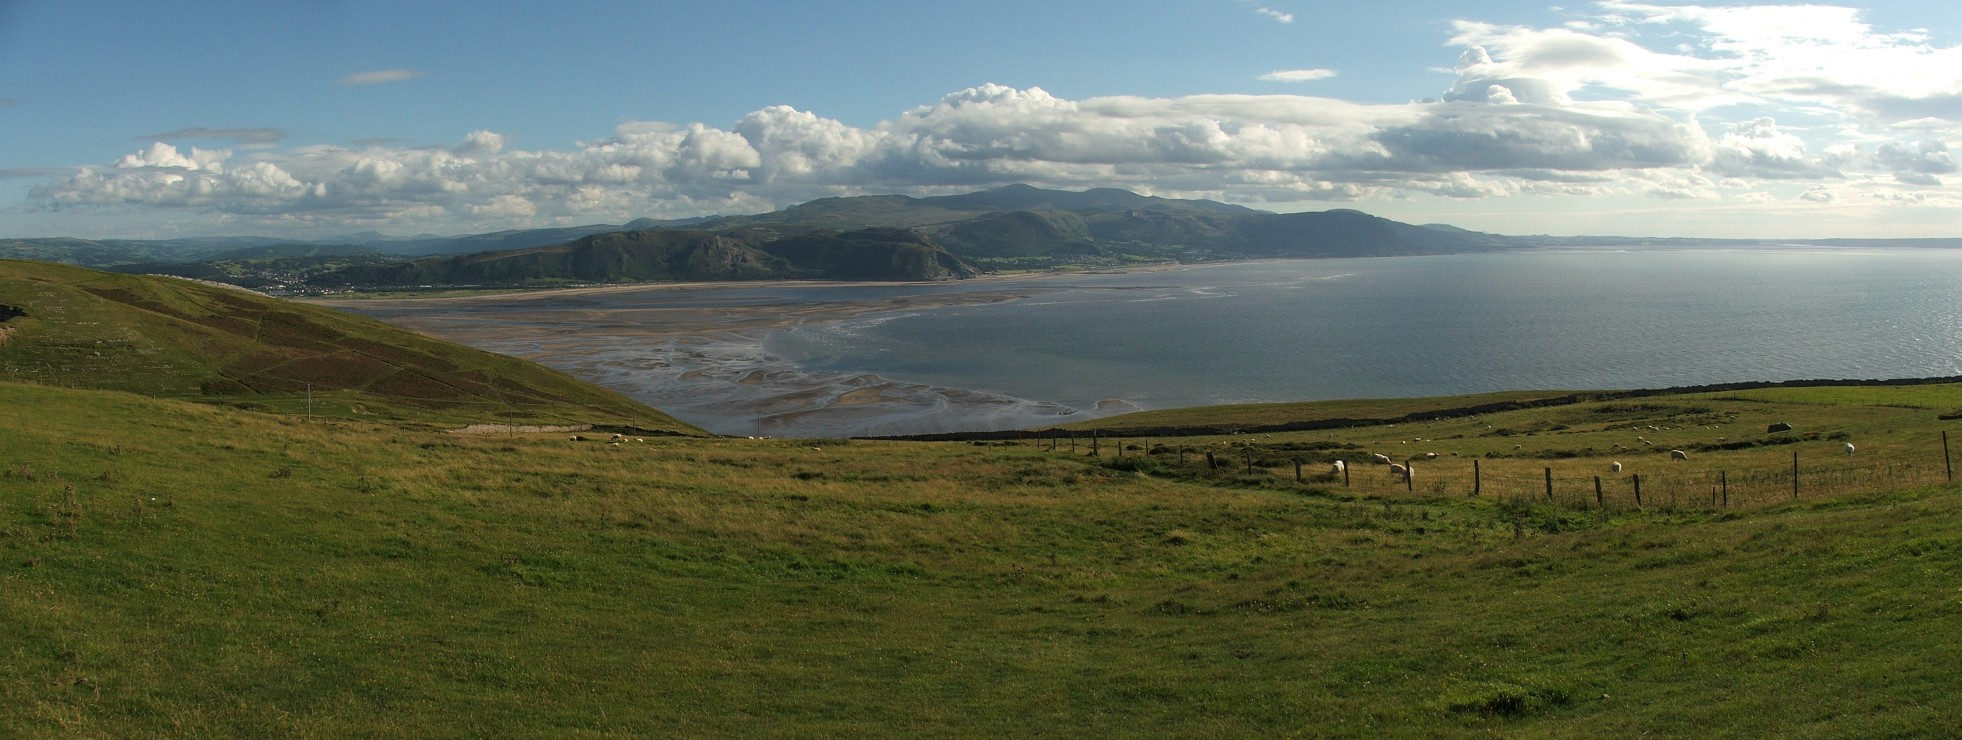 Panorama z Great Orme's Head